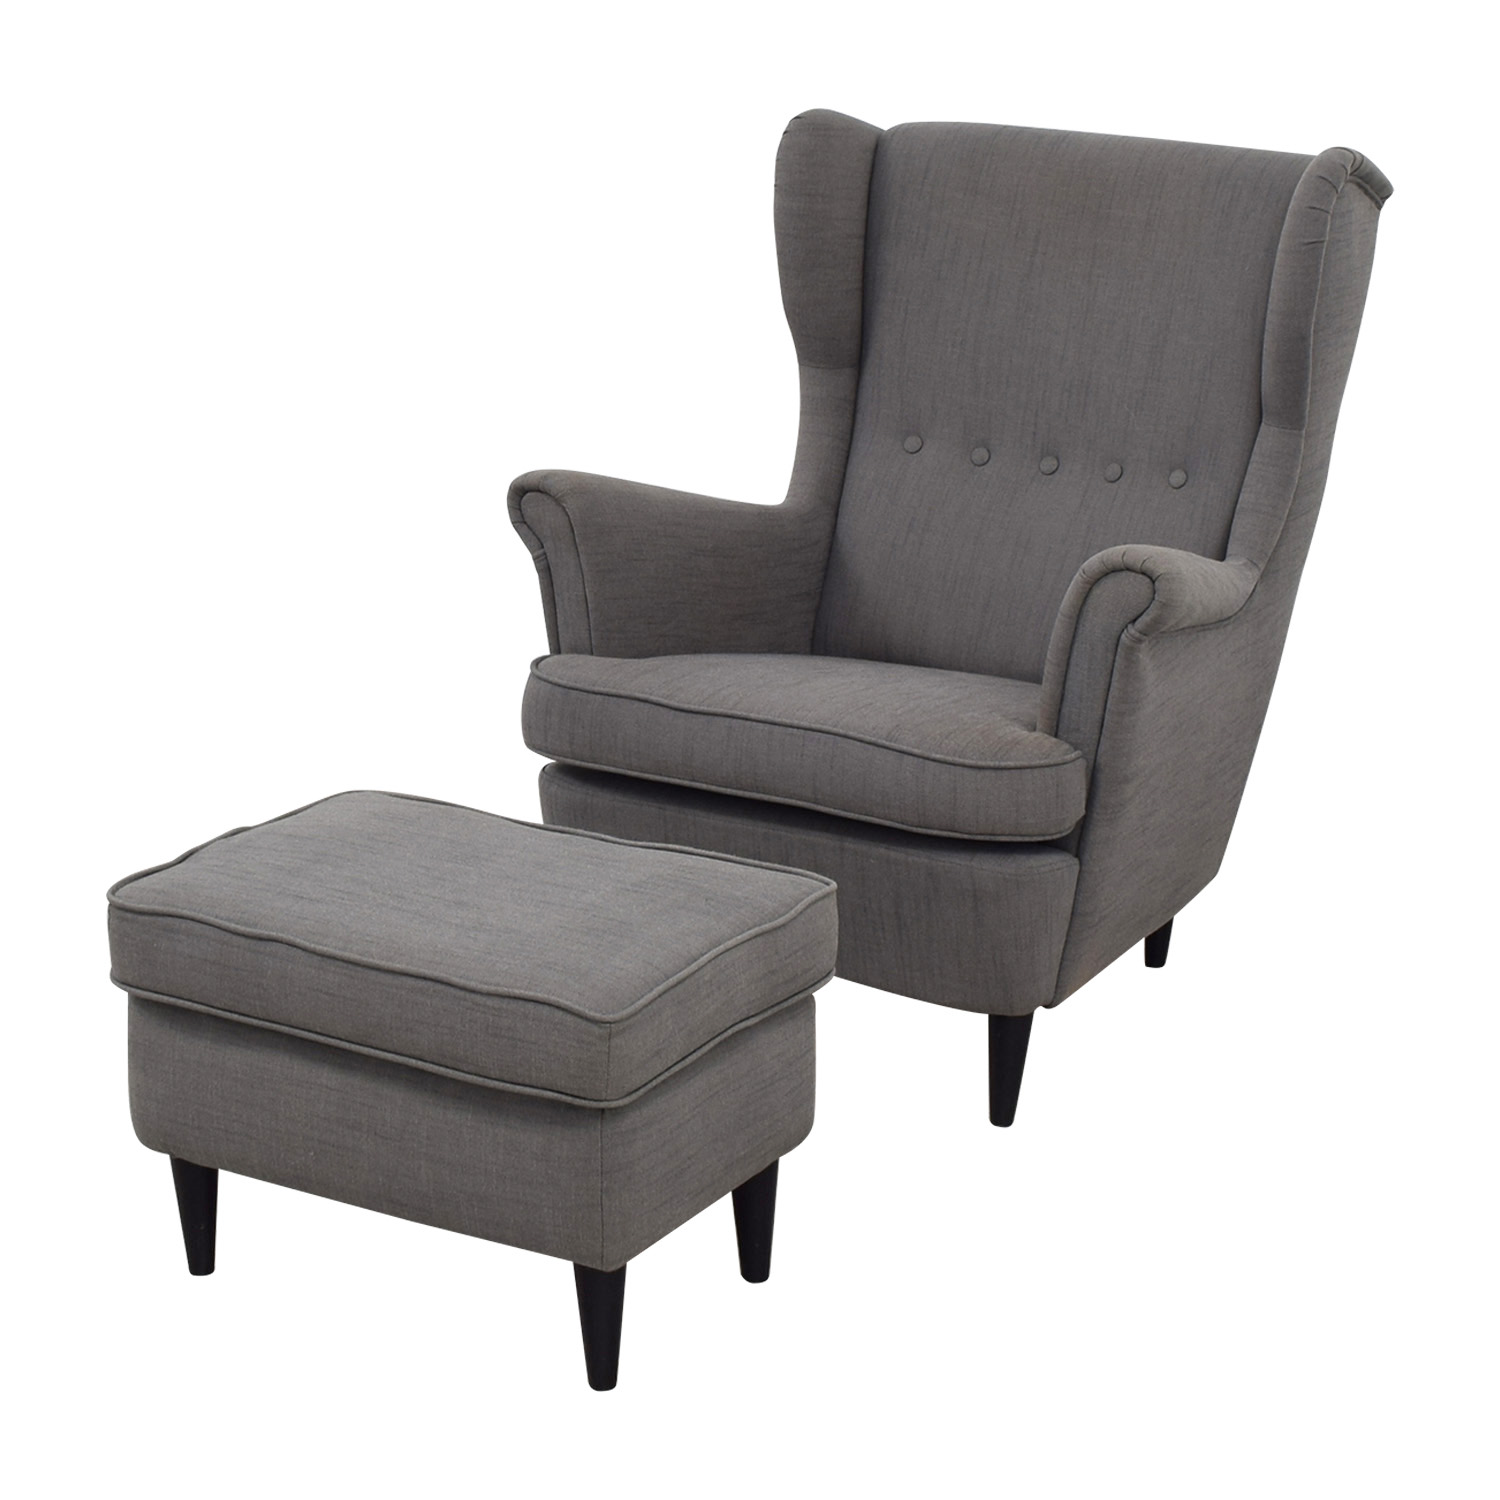 Ordinaire ... IKEA IKEA Grey Wing Chair And Ottoman Nyc ...